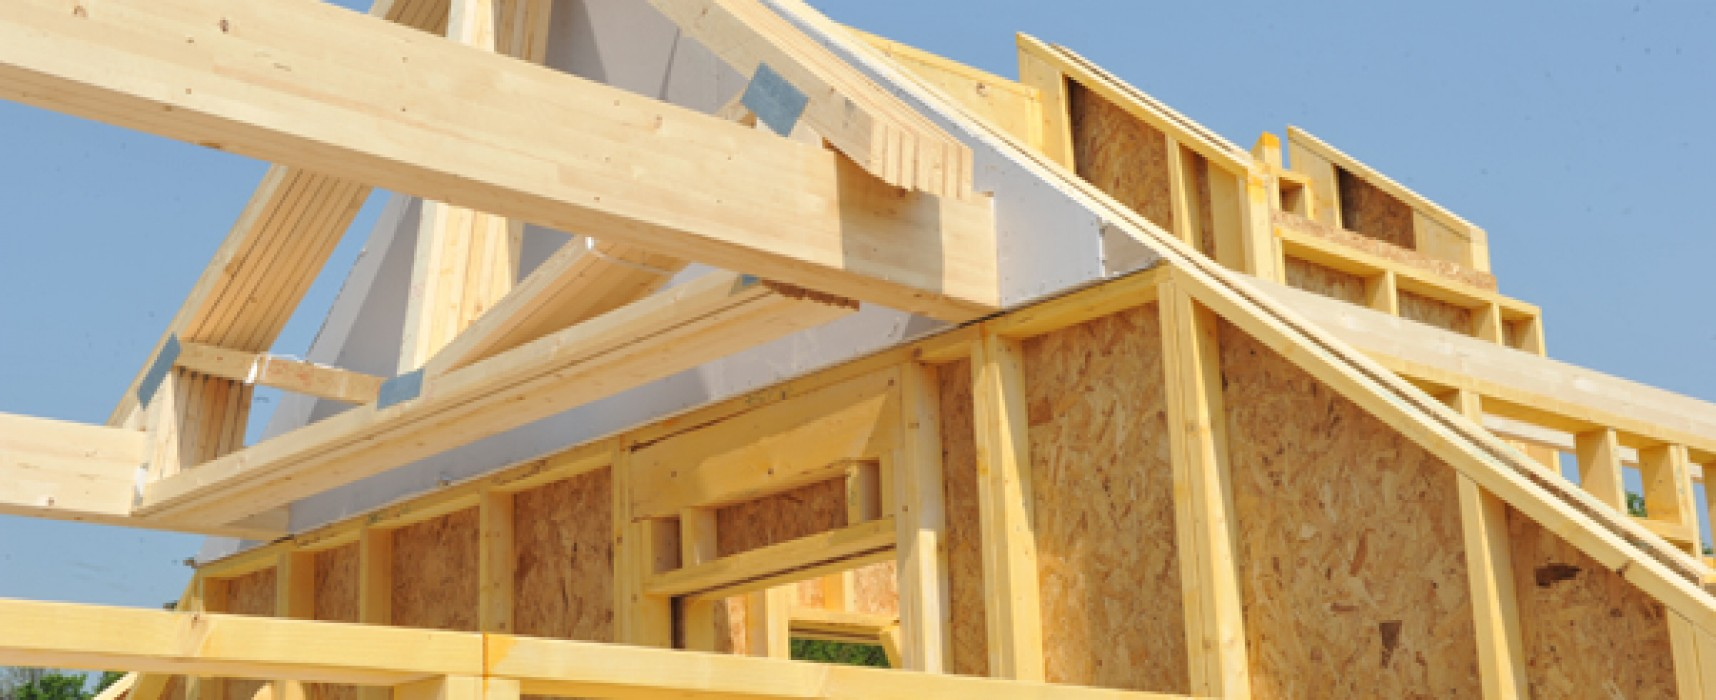 Why Use Timber in Building Your New Home